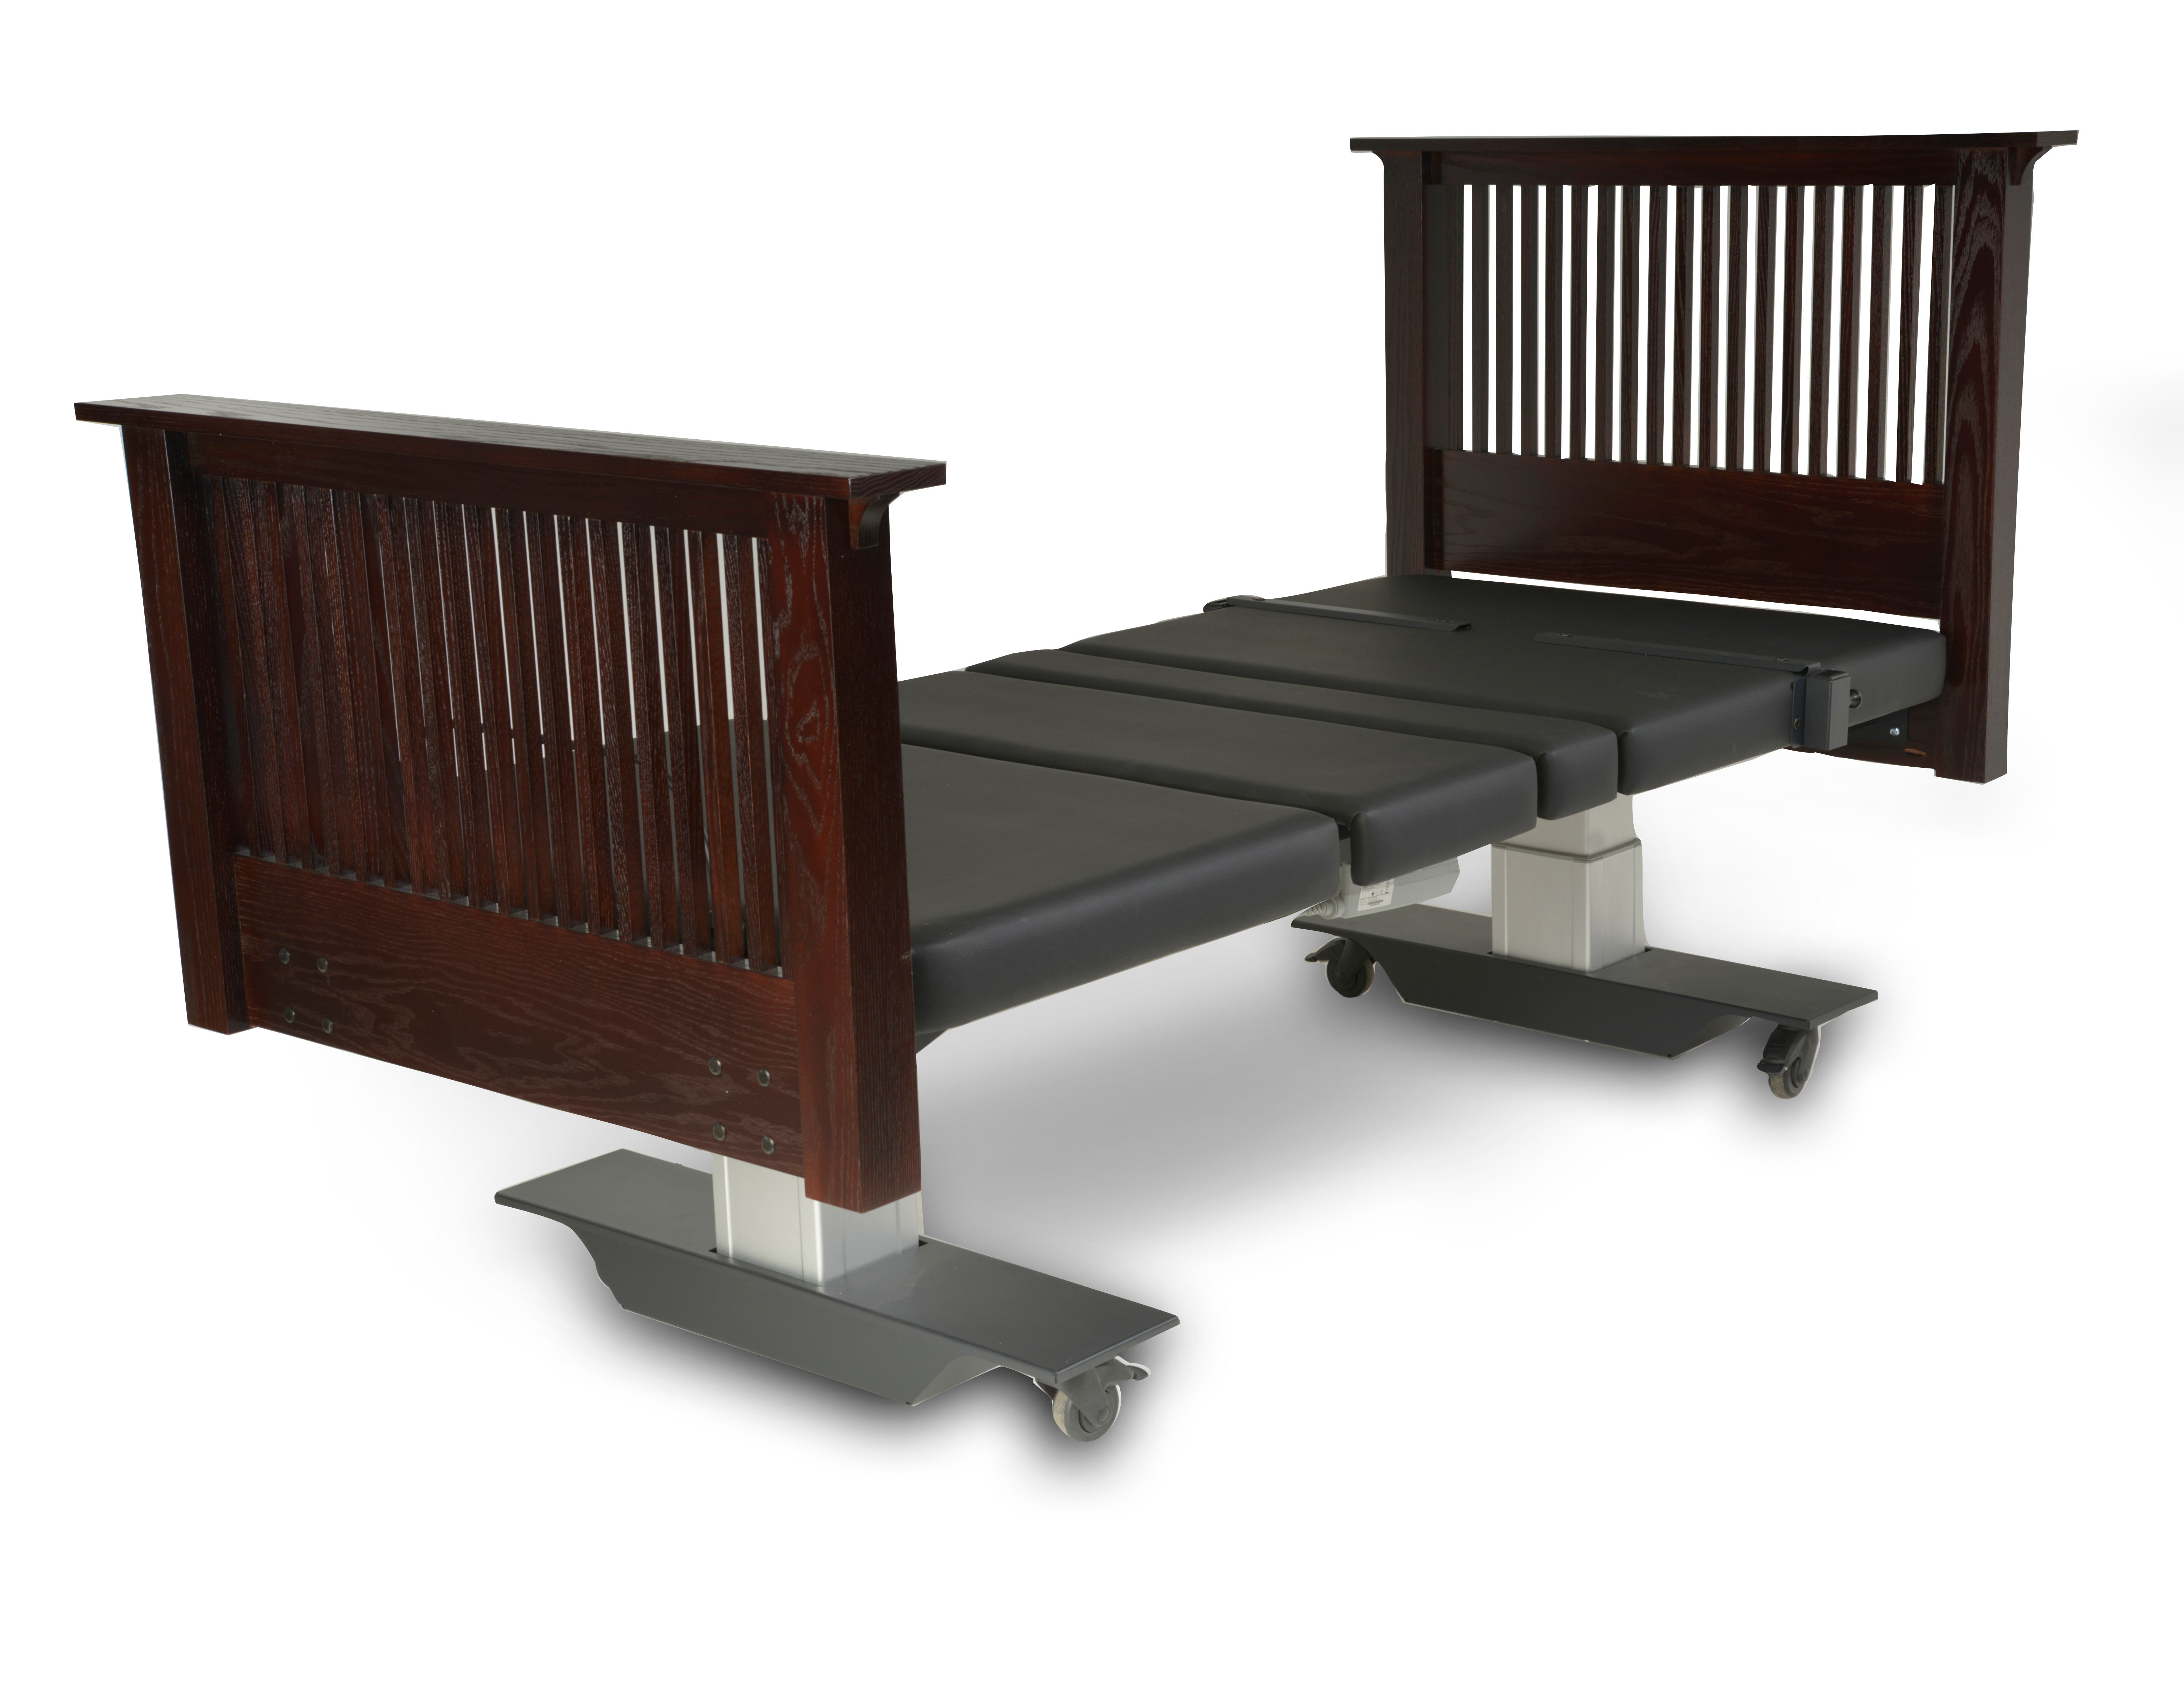 Assured Comfort Hi Low Adjustable Bed - Mobile Series - Mission Style - Up position - Assist Rail Adaptive